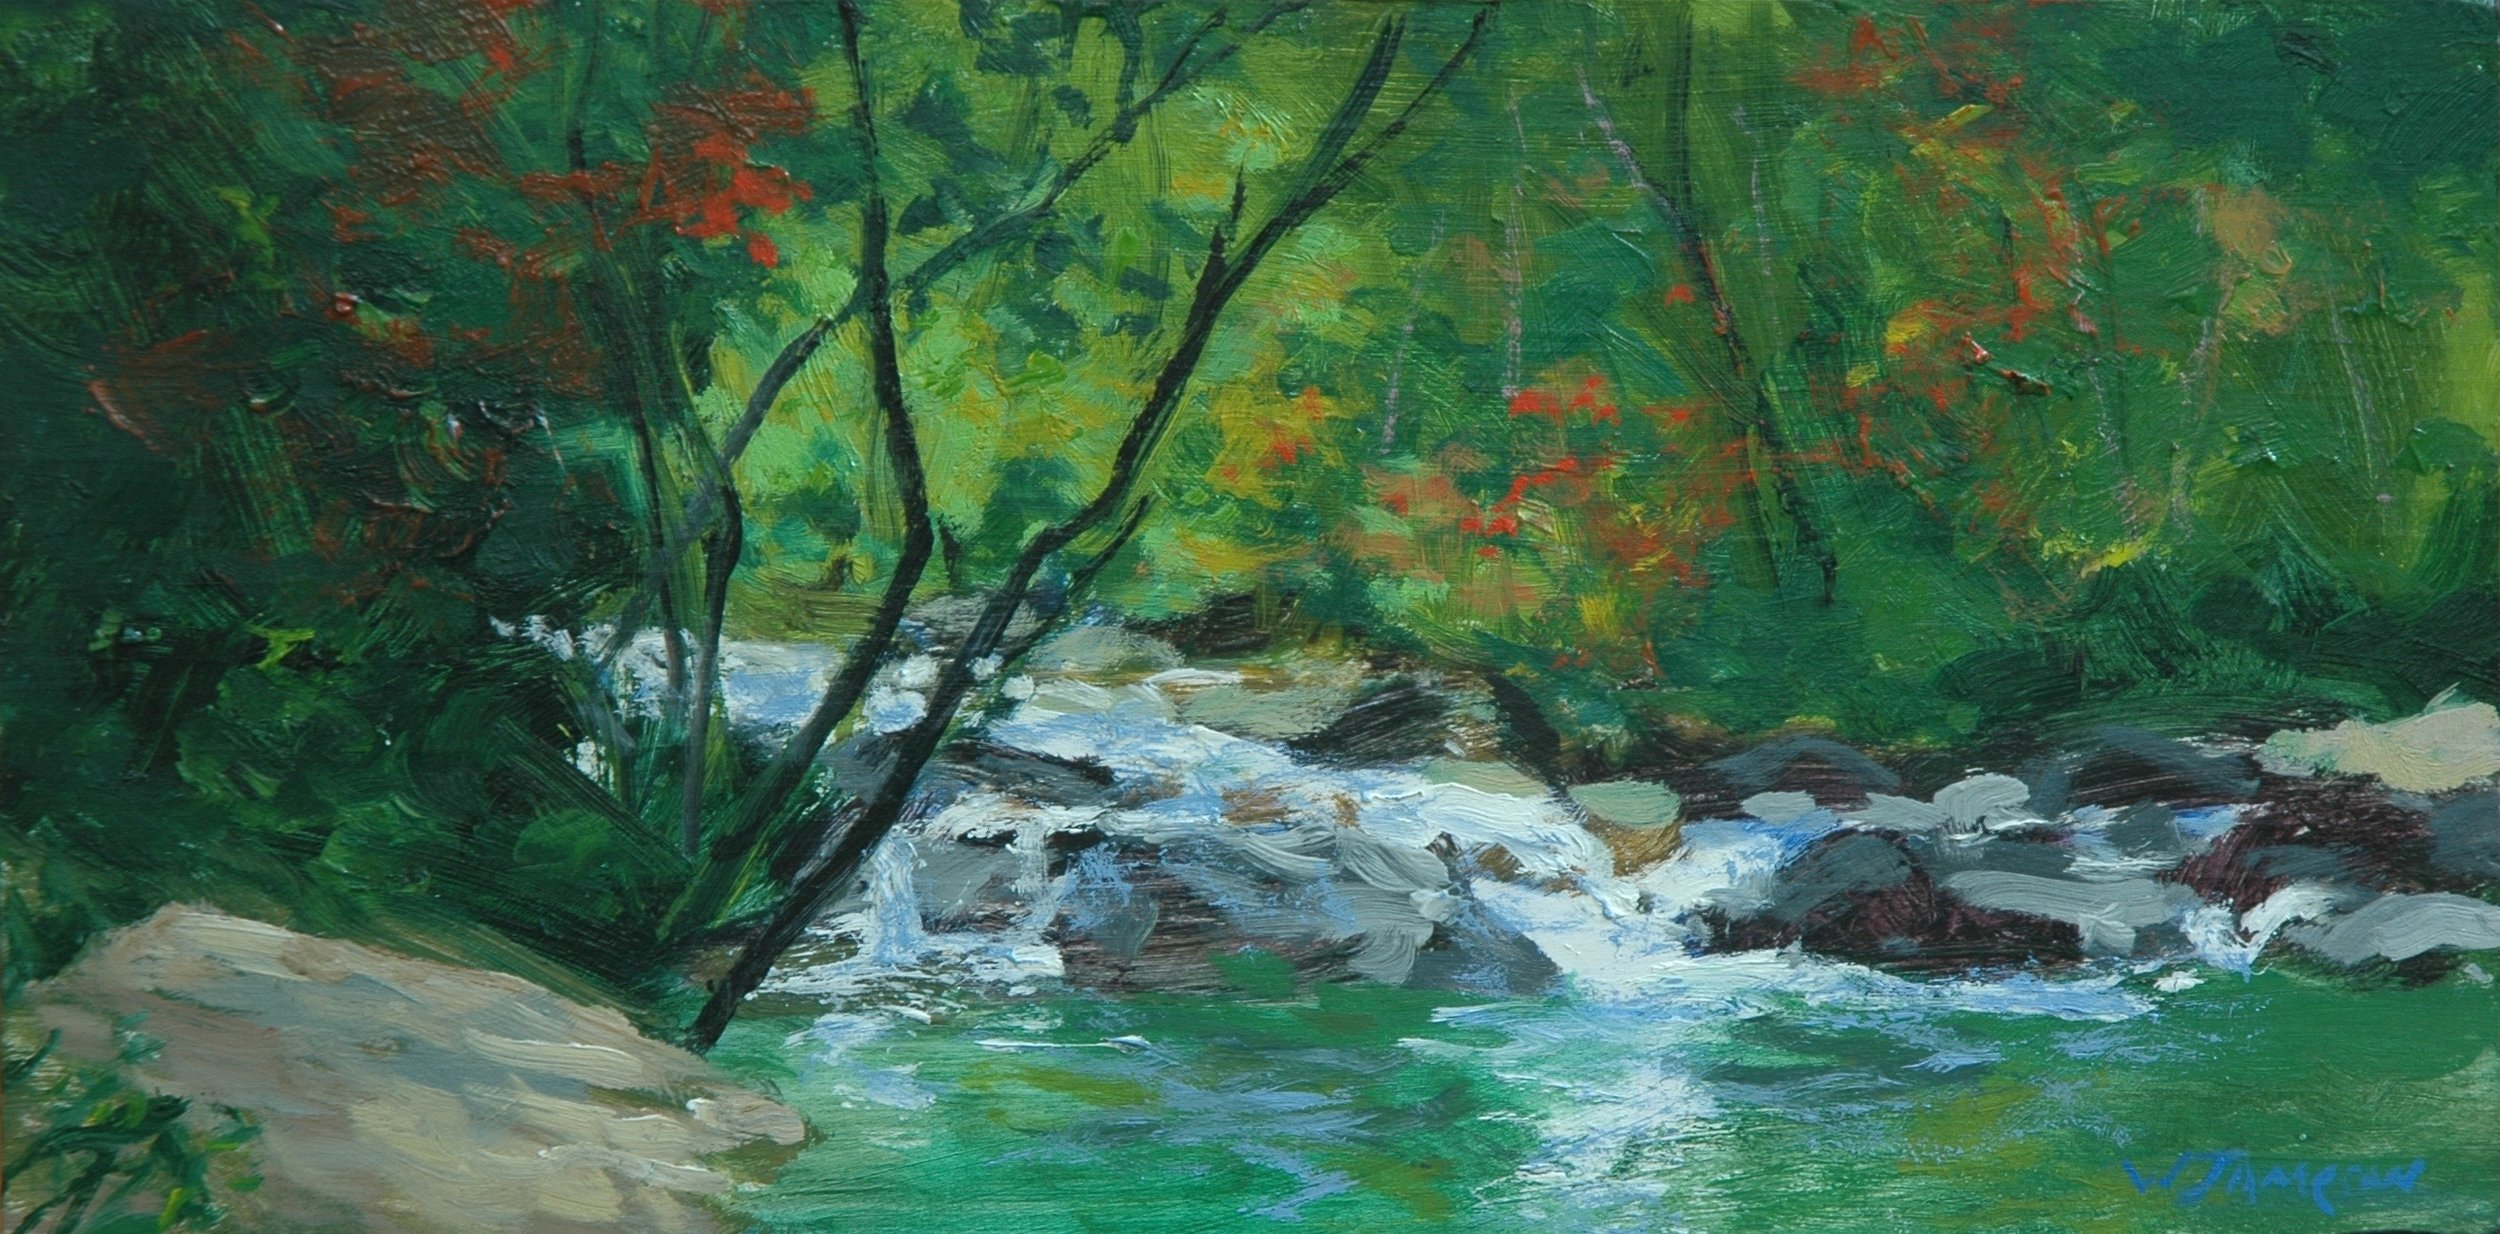 Carolina Creek Rapids 6x12 $750.jpg